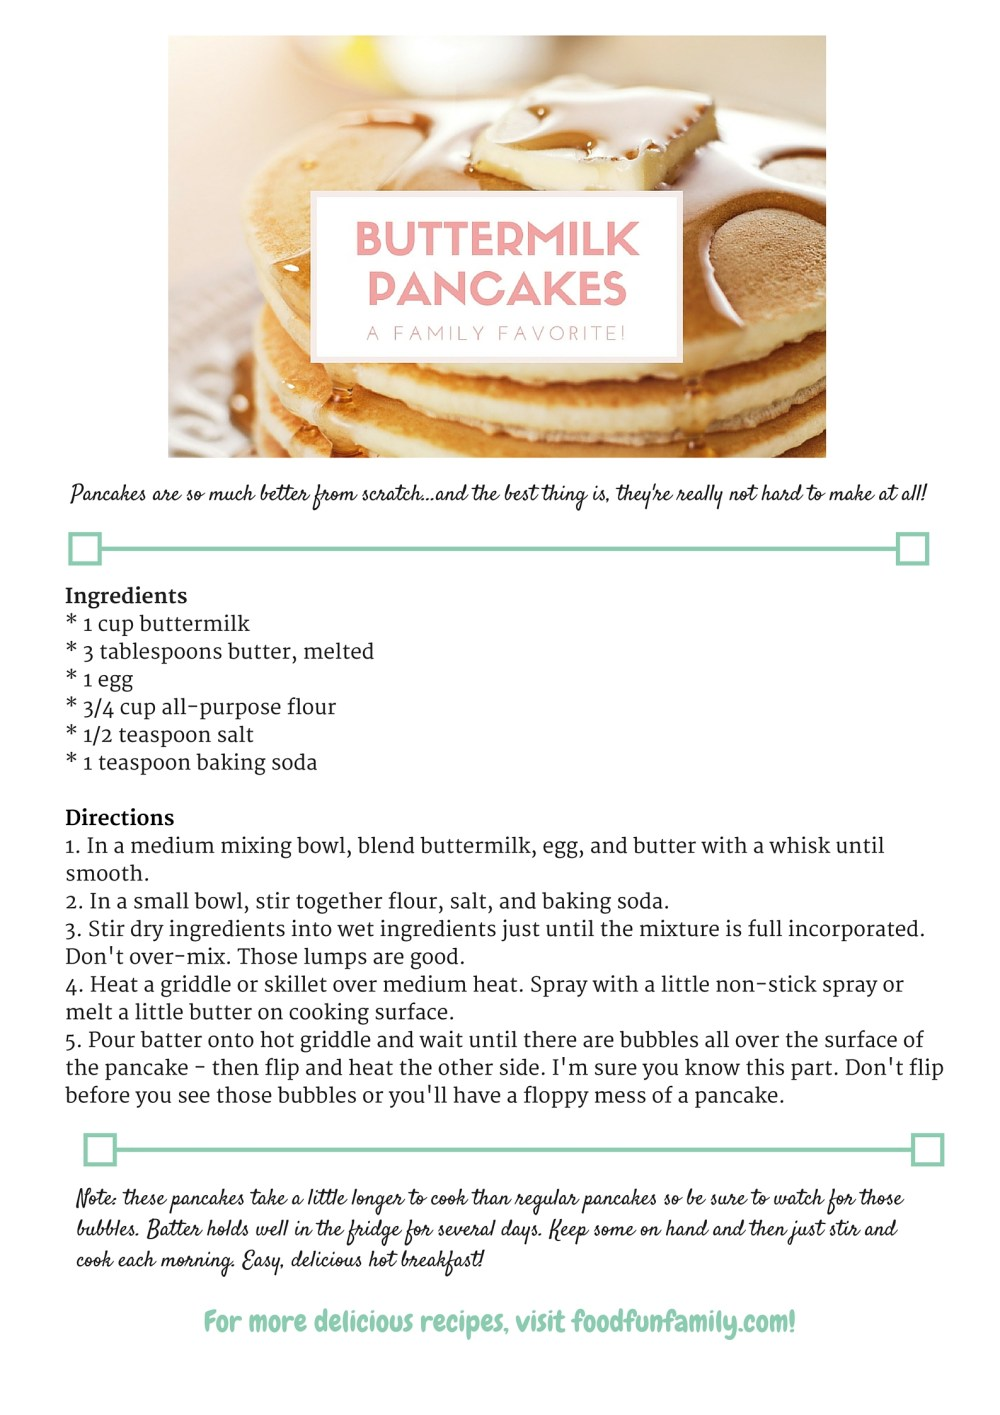 Buttermilk Pancakes recipe free download from Food Fun Family